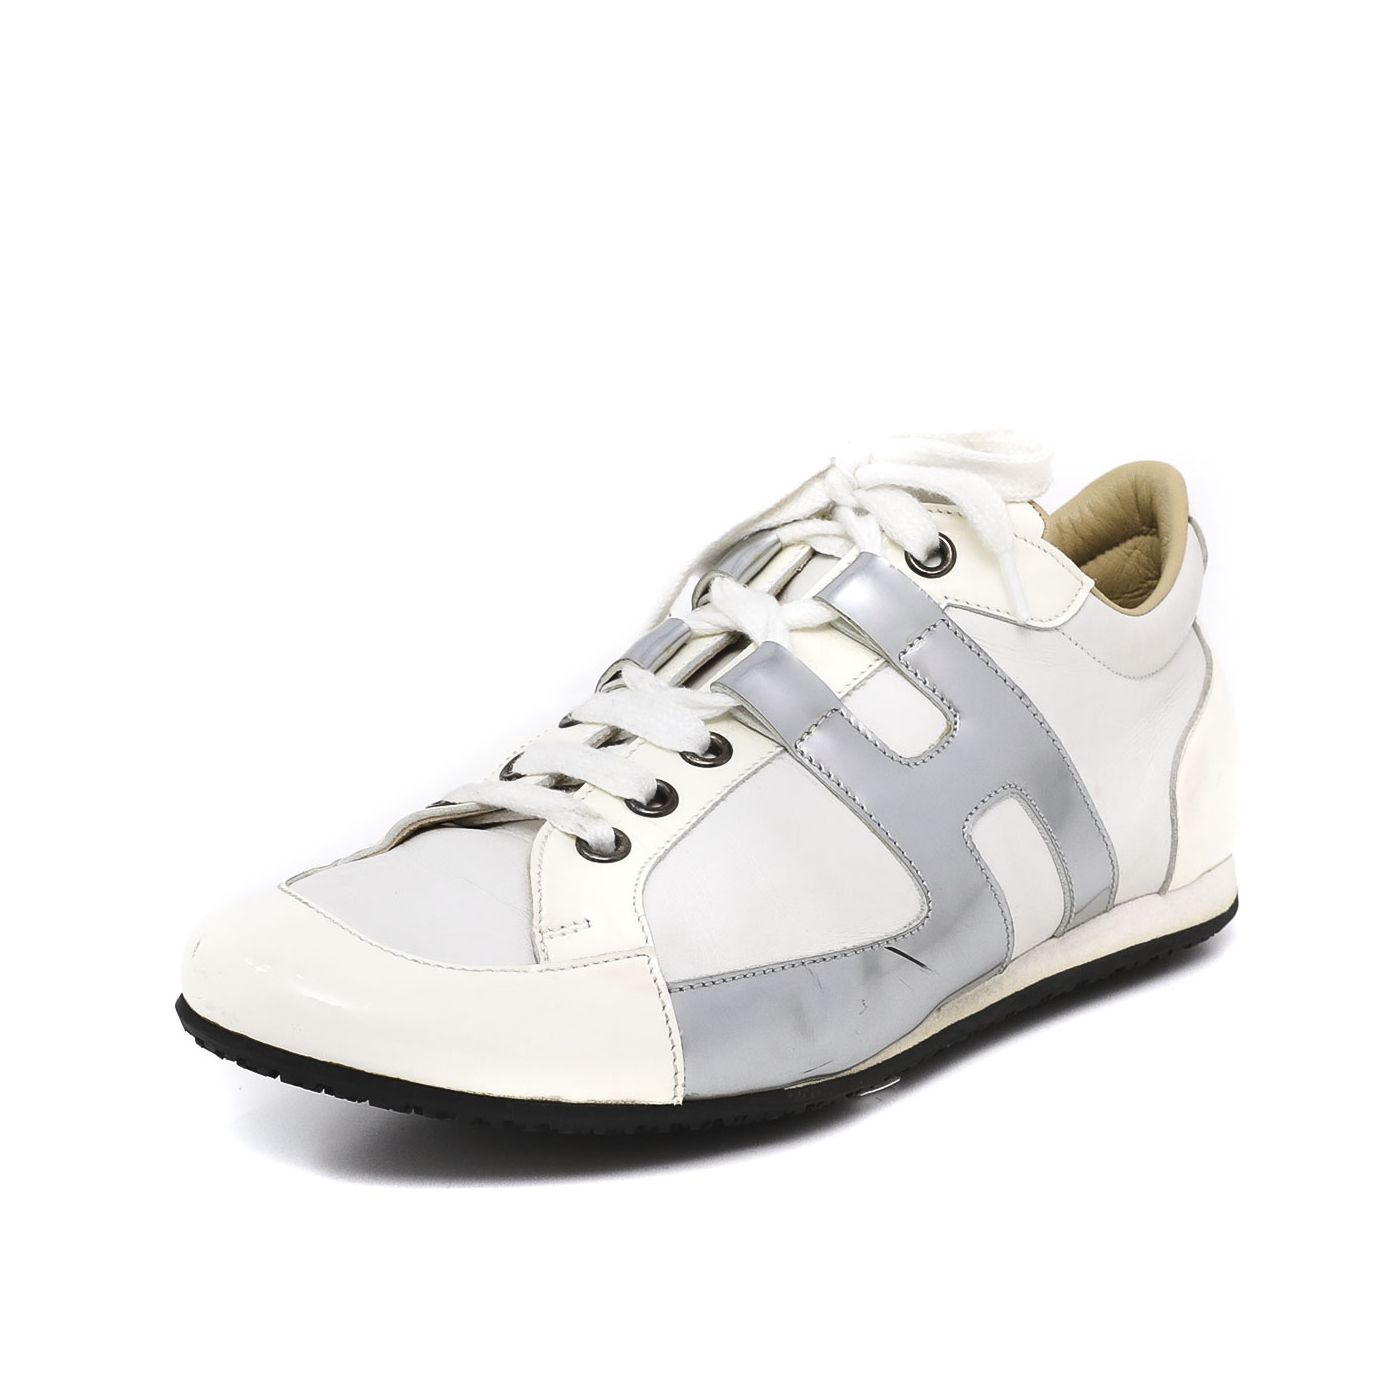 Hermes White in Silver Tie Break Sneakers 37